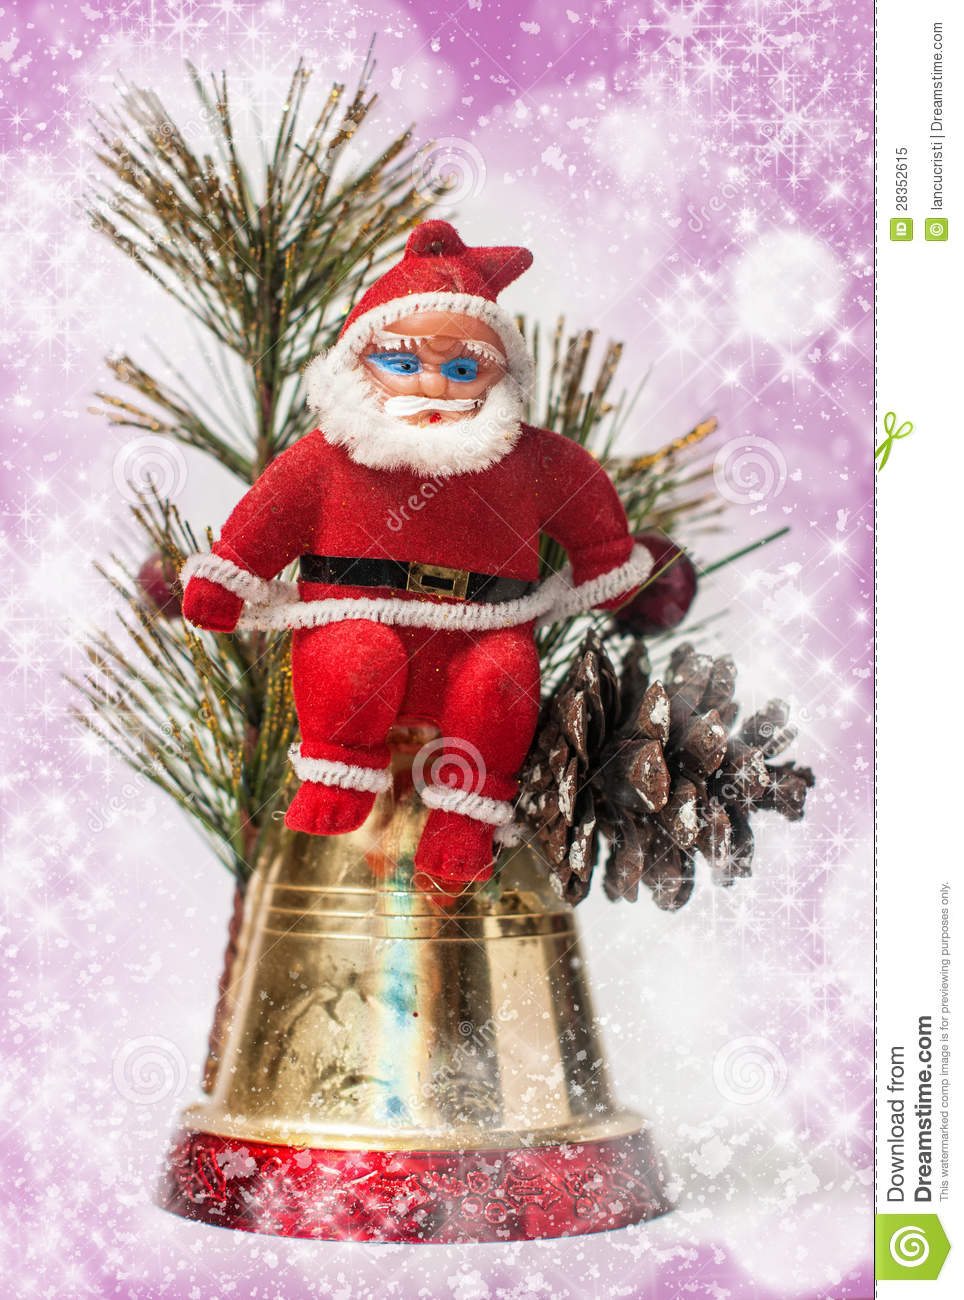 Christmas Decoration With Santa Claus Royalty Free Stock ...